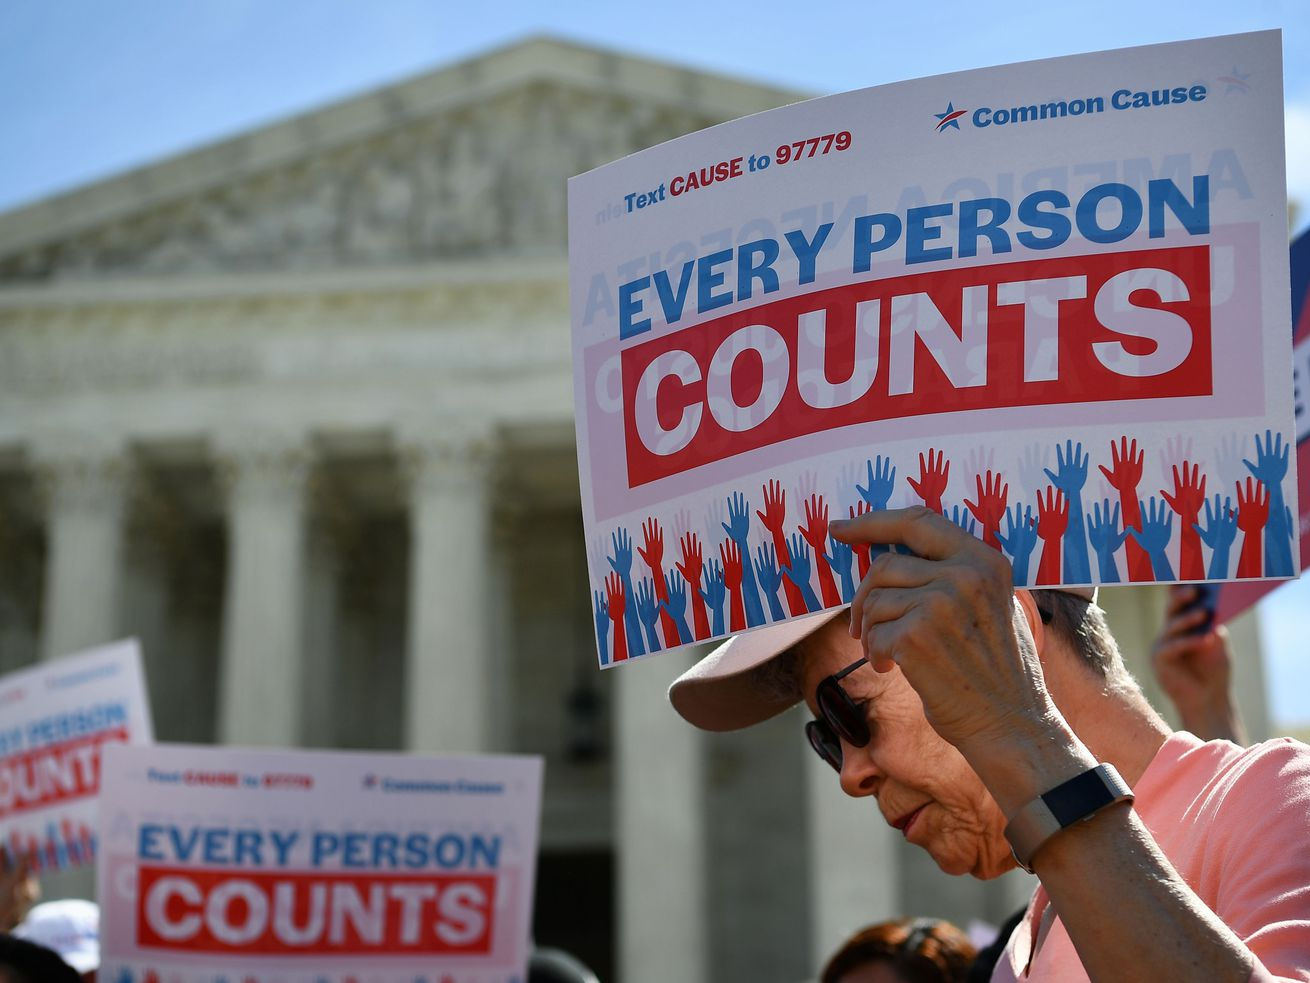 Demonstrators rally at the US Supreme Court in Washington, DC, on April 23, 2019, to protest a proposal to add a citizenship question in the 2020 census.